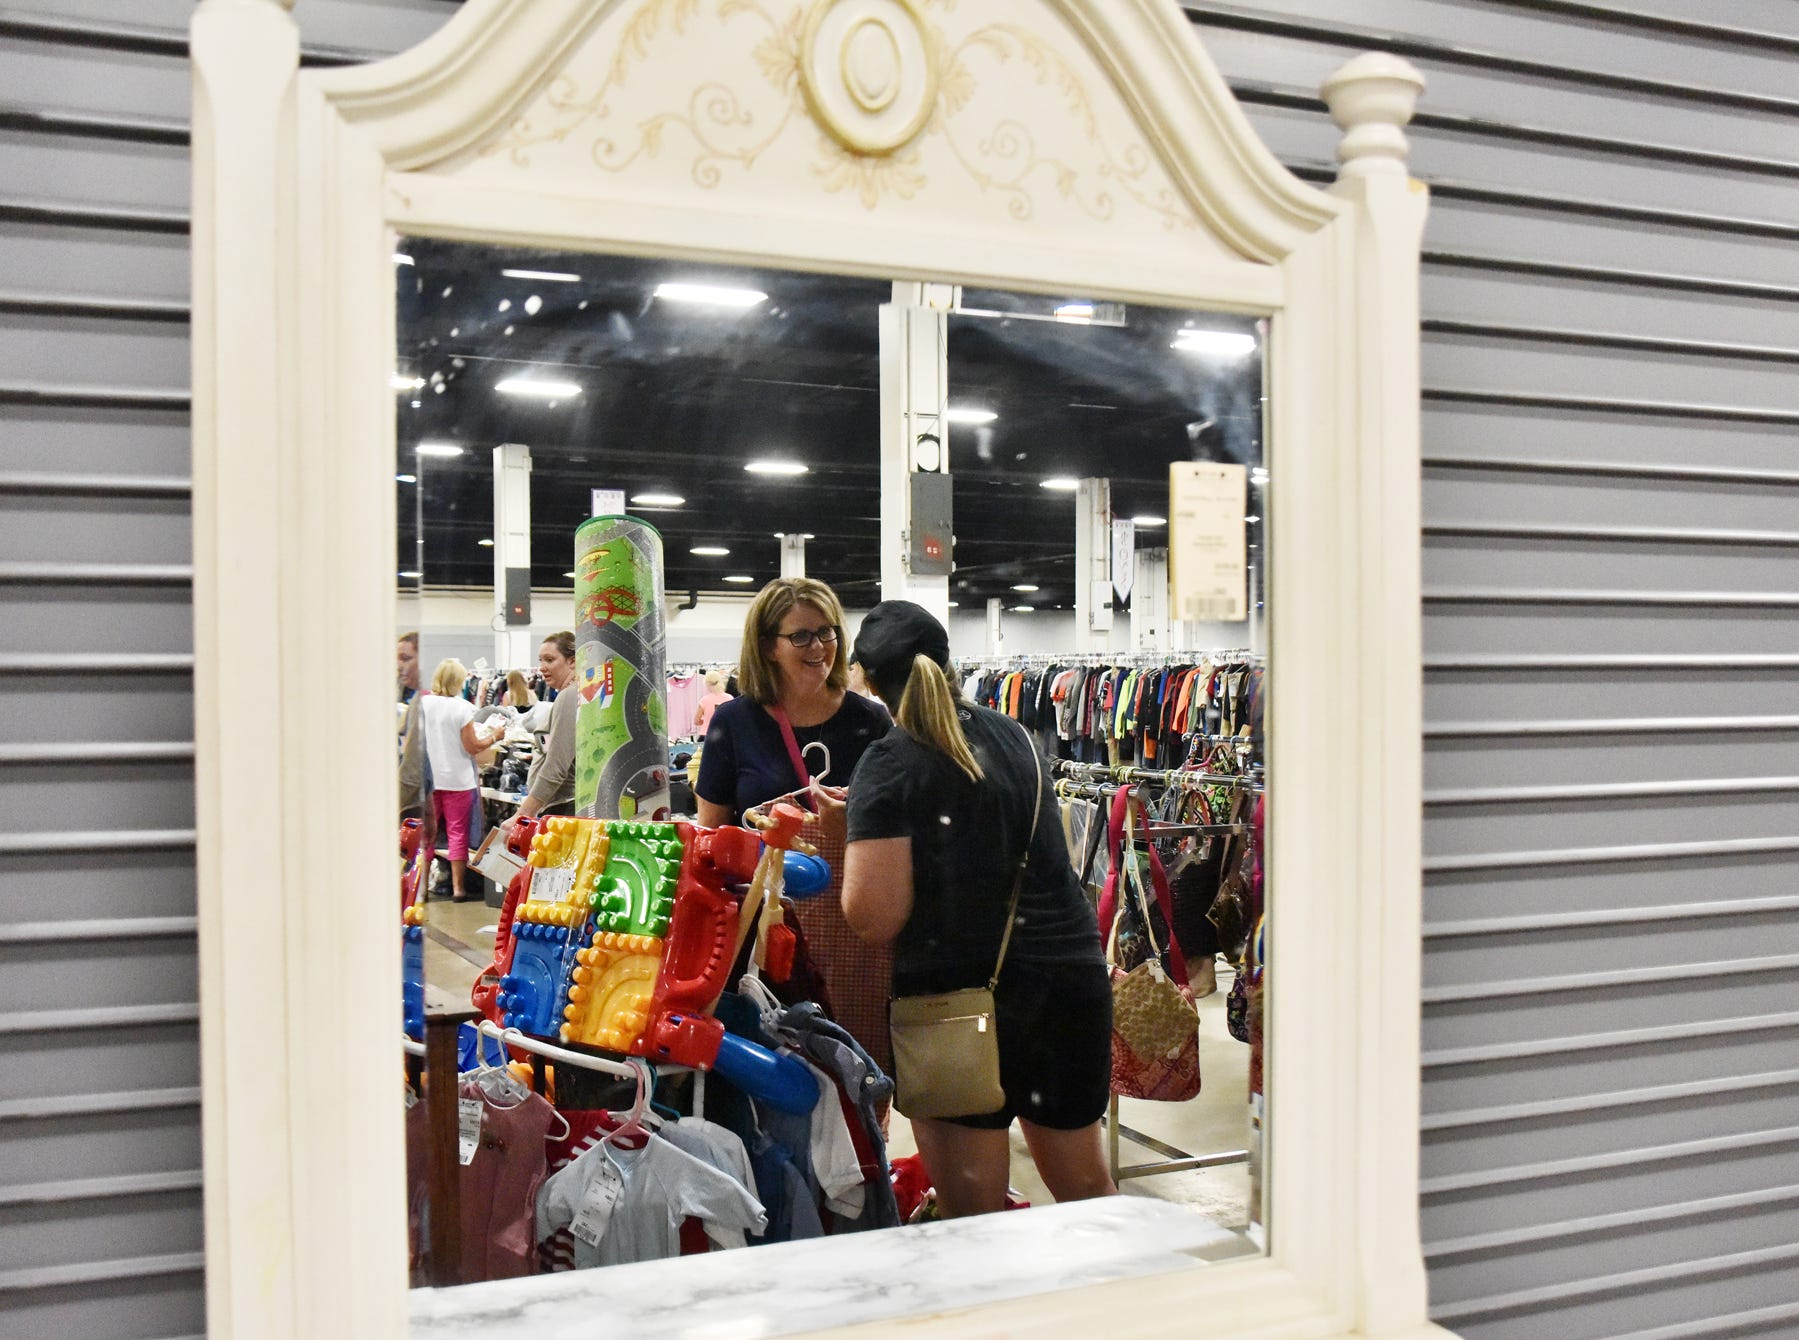 Diane Aiken, left, Jennifer McAlister are reflected in a mirror while shopping during the Switch-A-Roos children's consignment event at the TD Convention Center in Greenville on Wednesday afternoon, August 8, 2018.